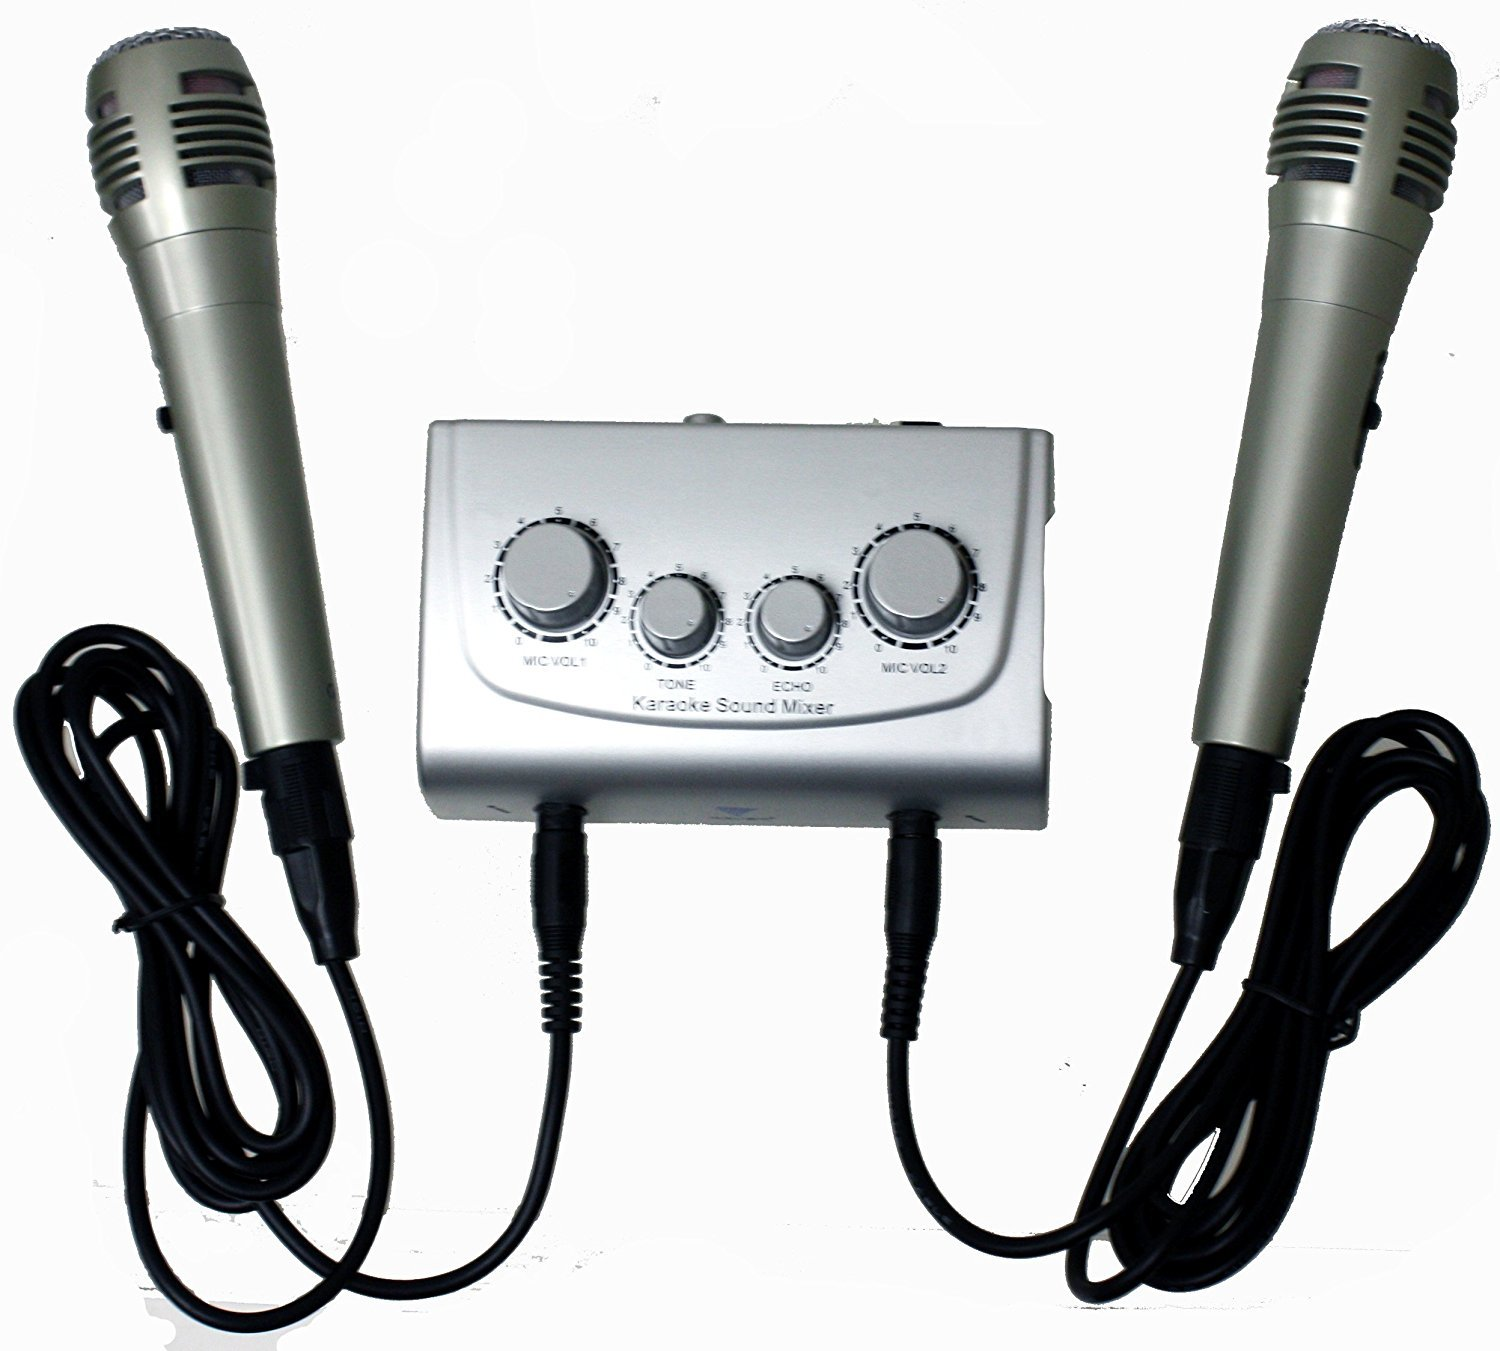 Azusa Mik0115 Karaoke Mixer With Microphones Musical Low Cost Mic Instruments